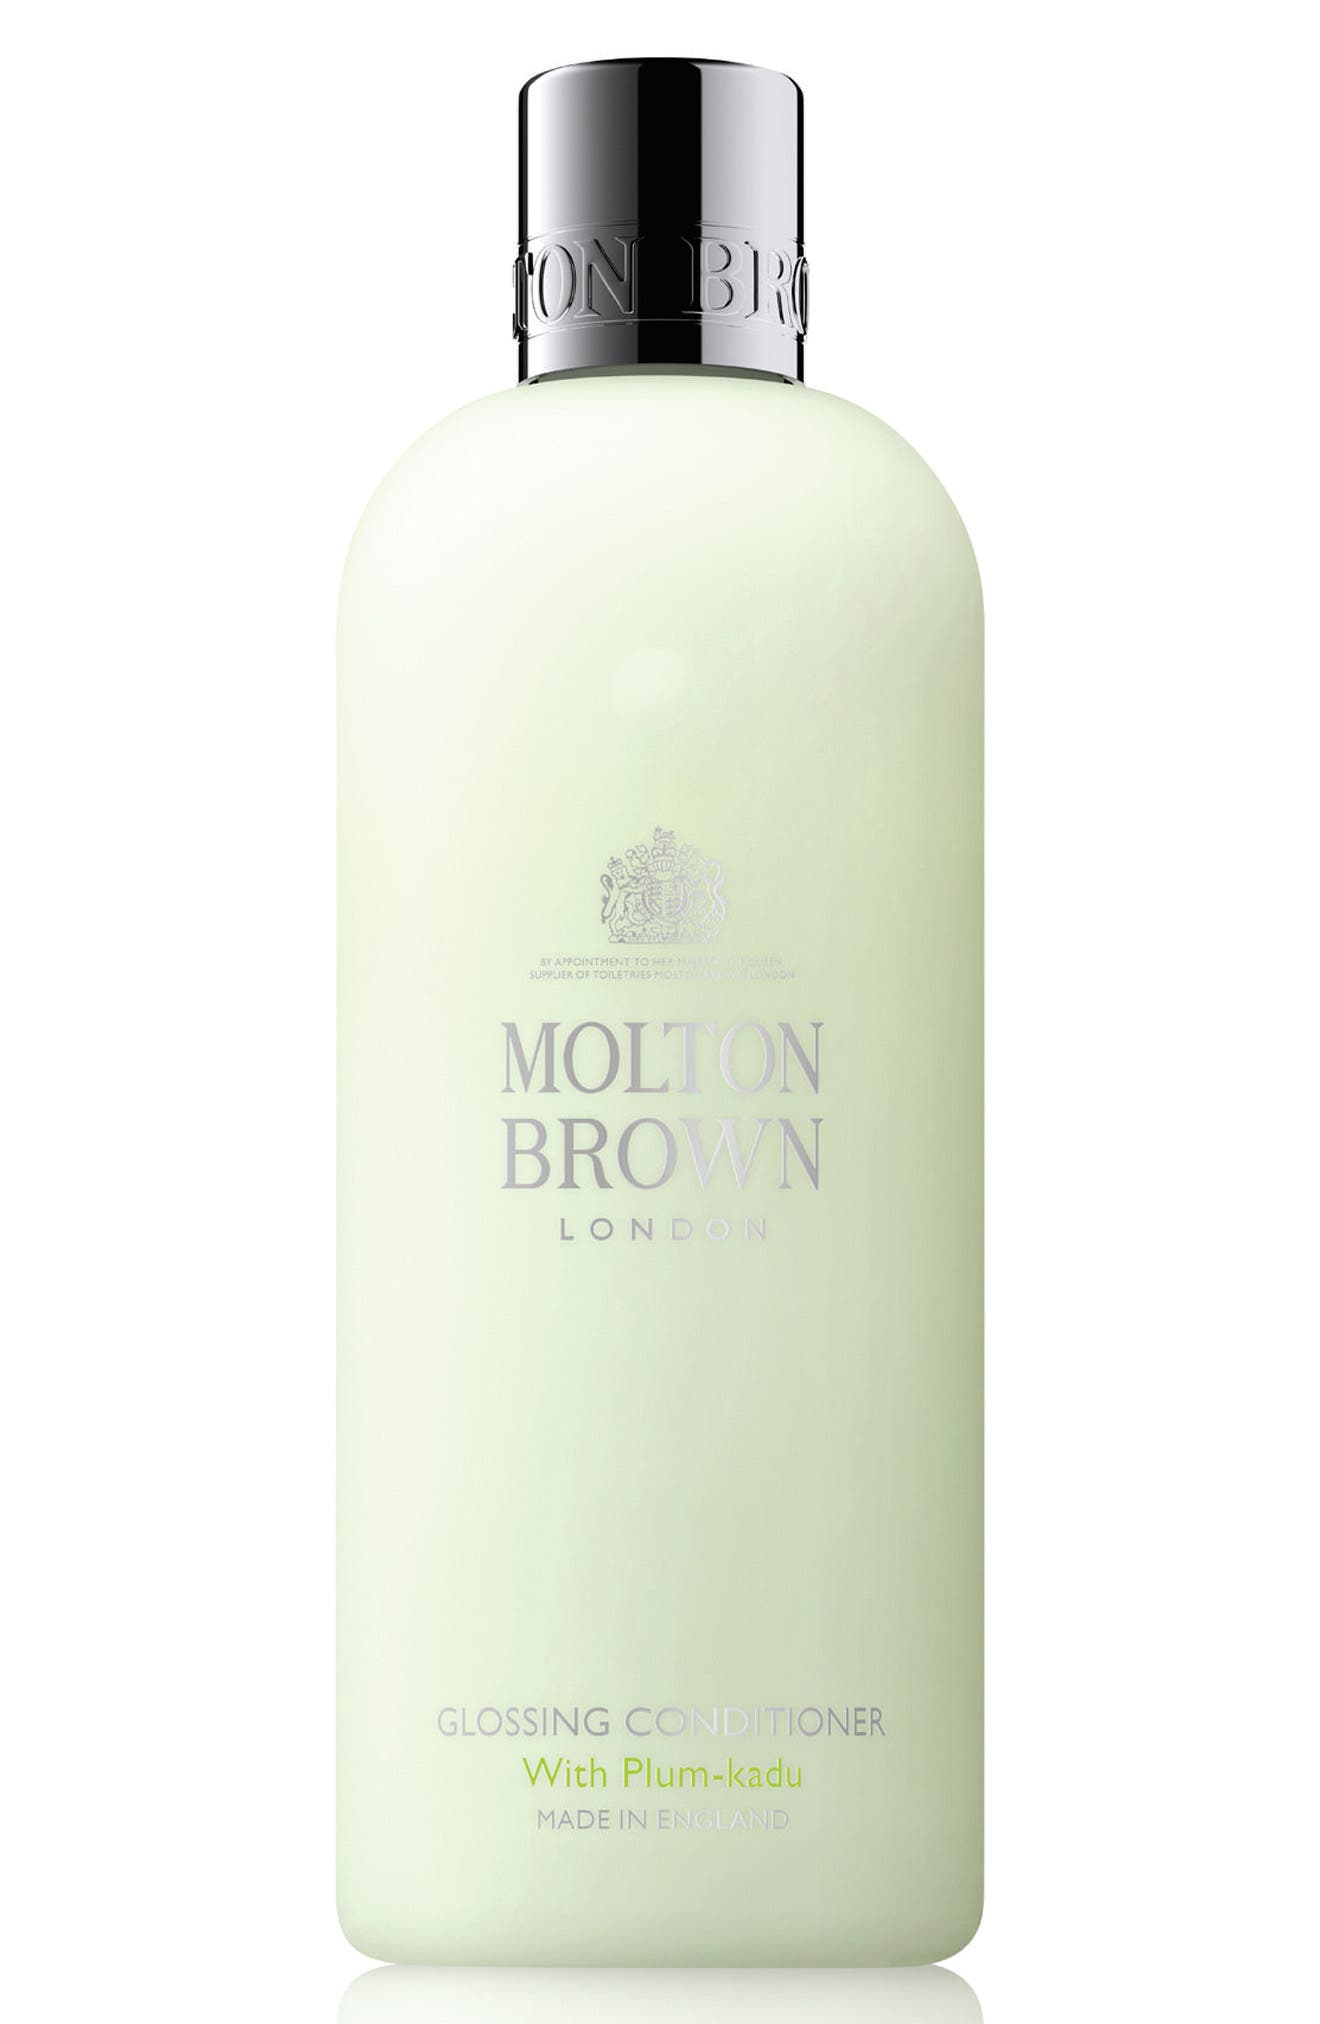 MOLTON BROWN London Glossing Conditioner with Plum Kadu